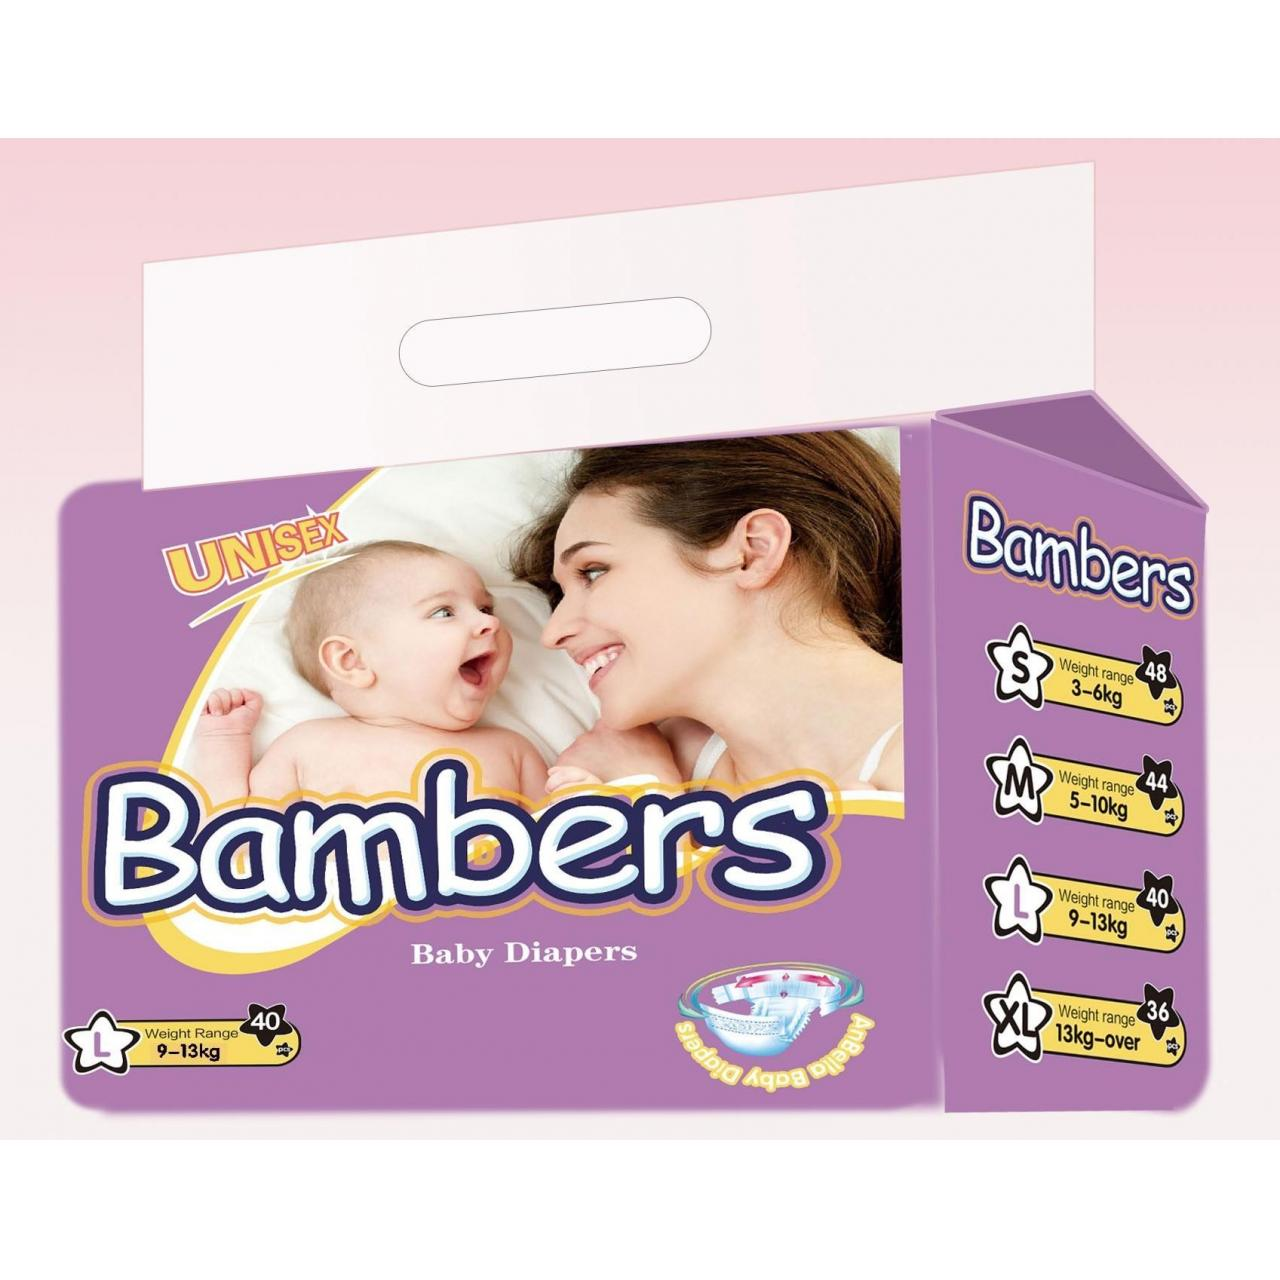 Baby Diapers baby L